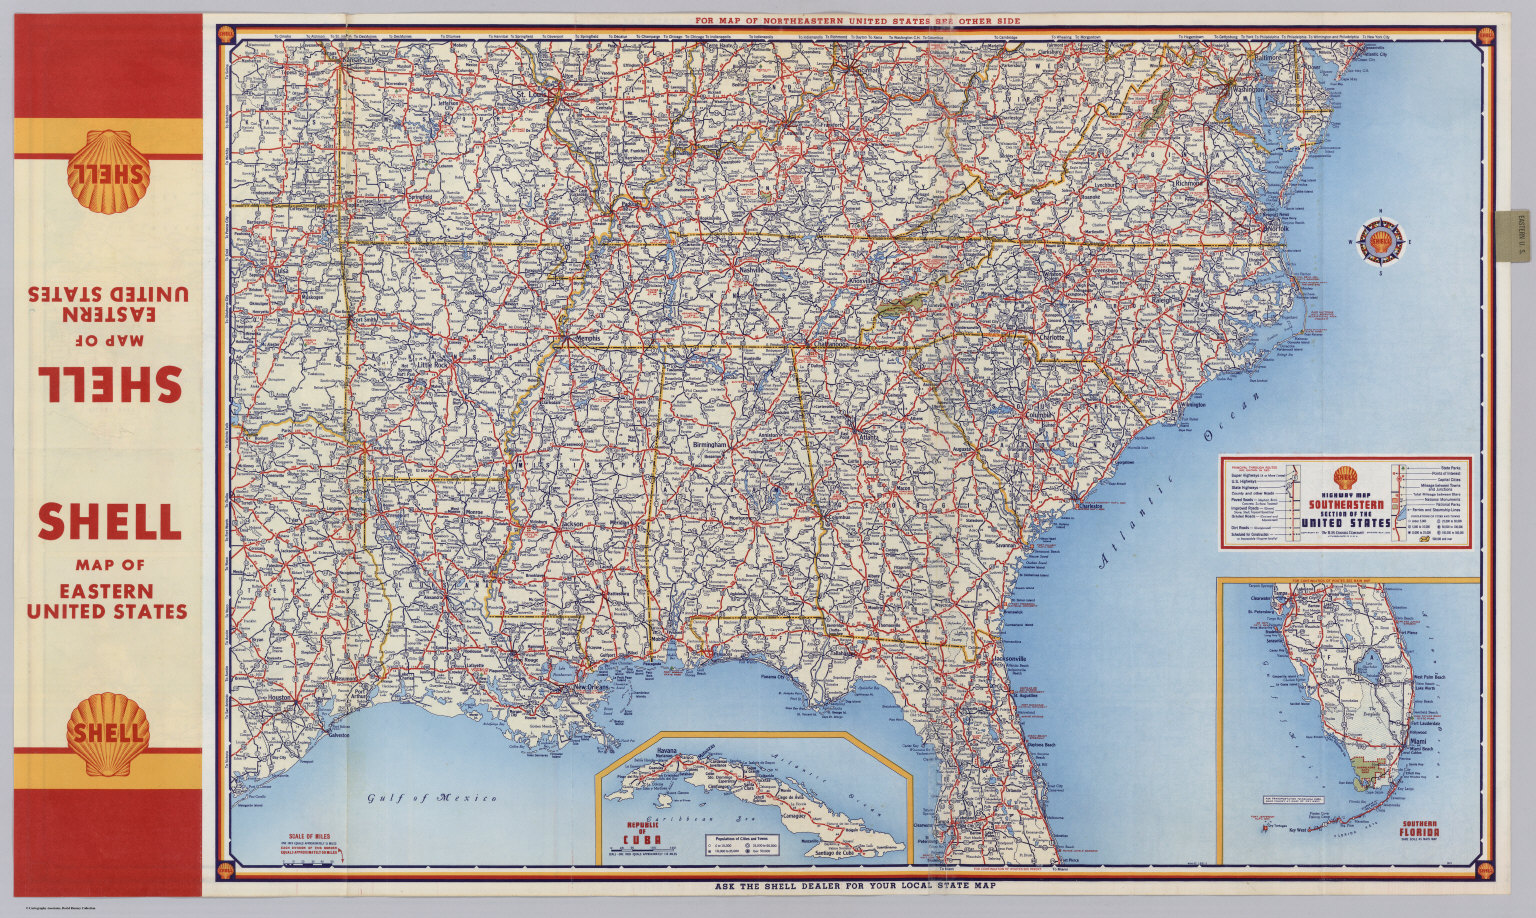 Shell Highway Map Southeastern Section Of The United States - Map of cuba and southeast us